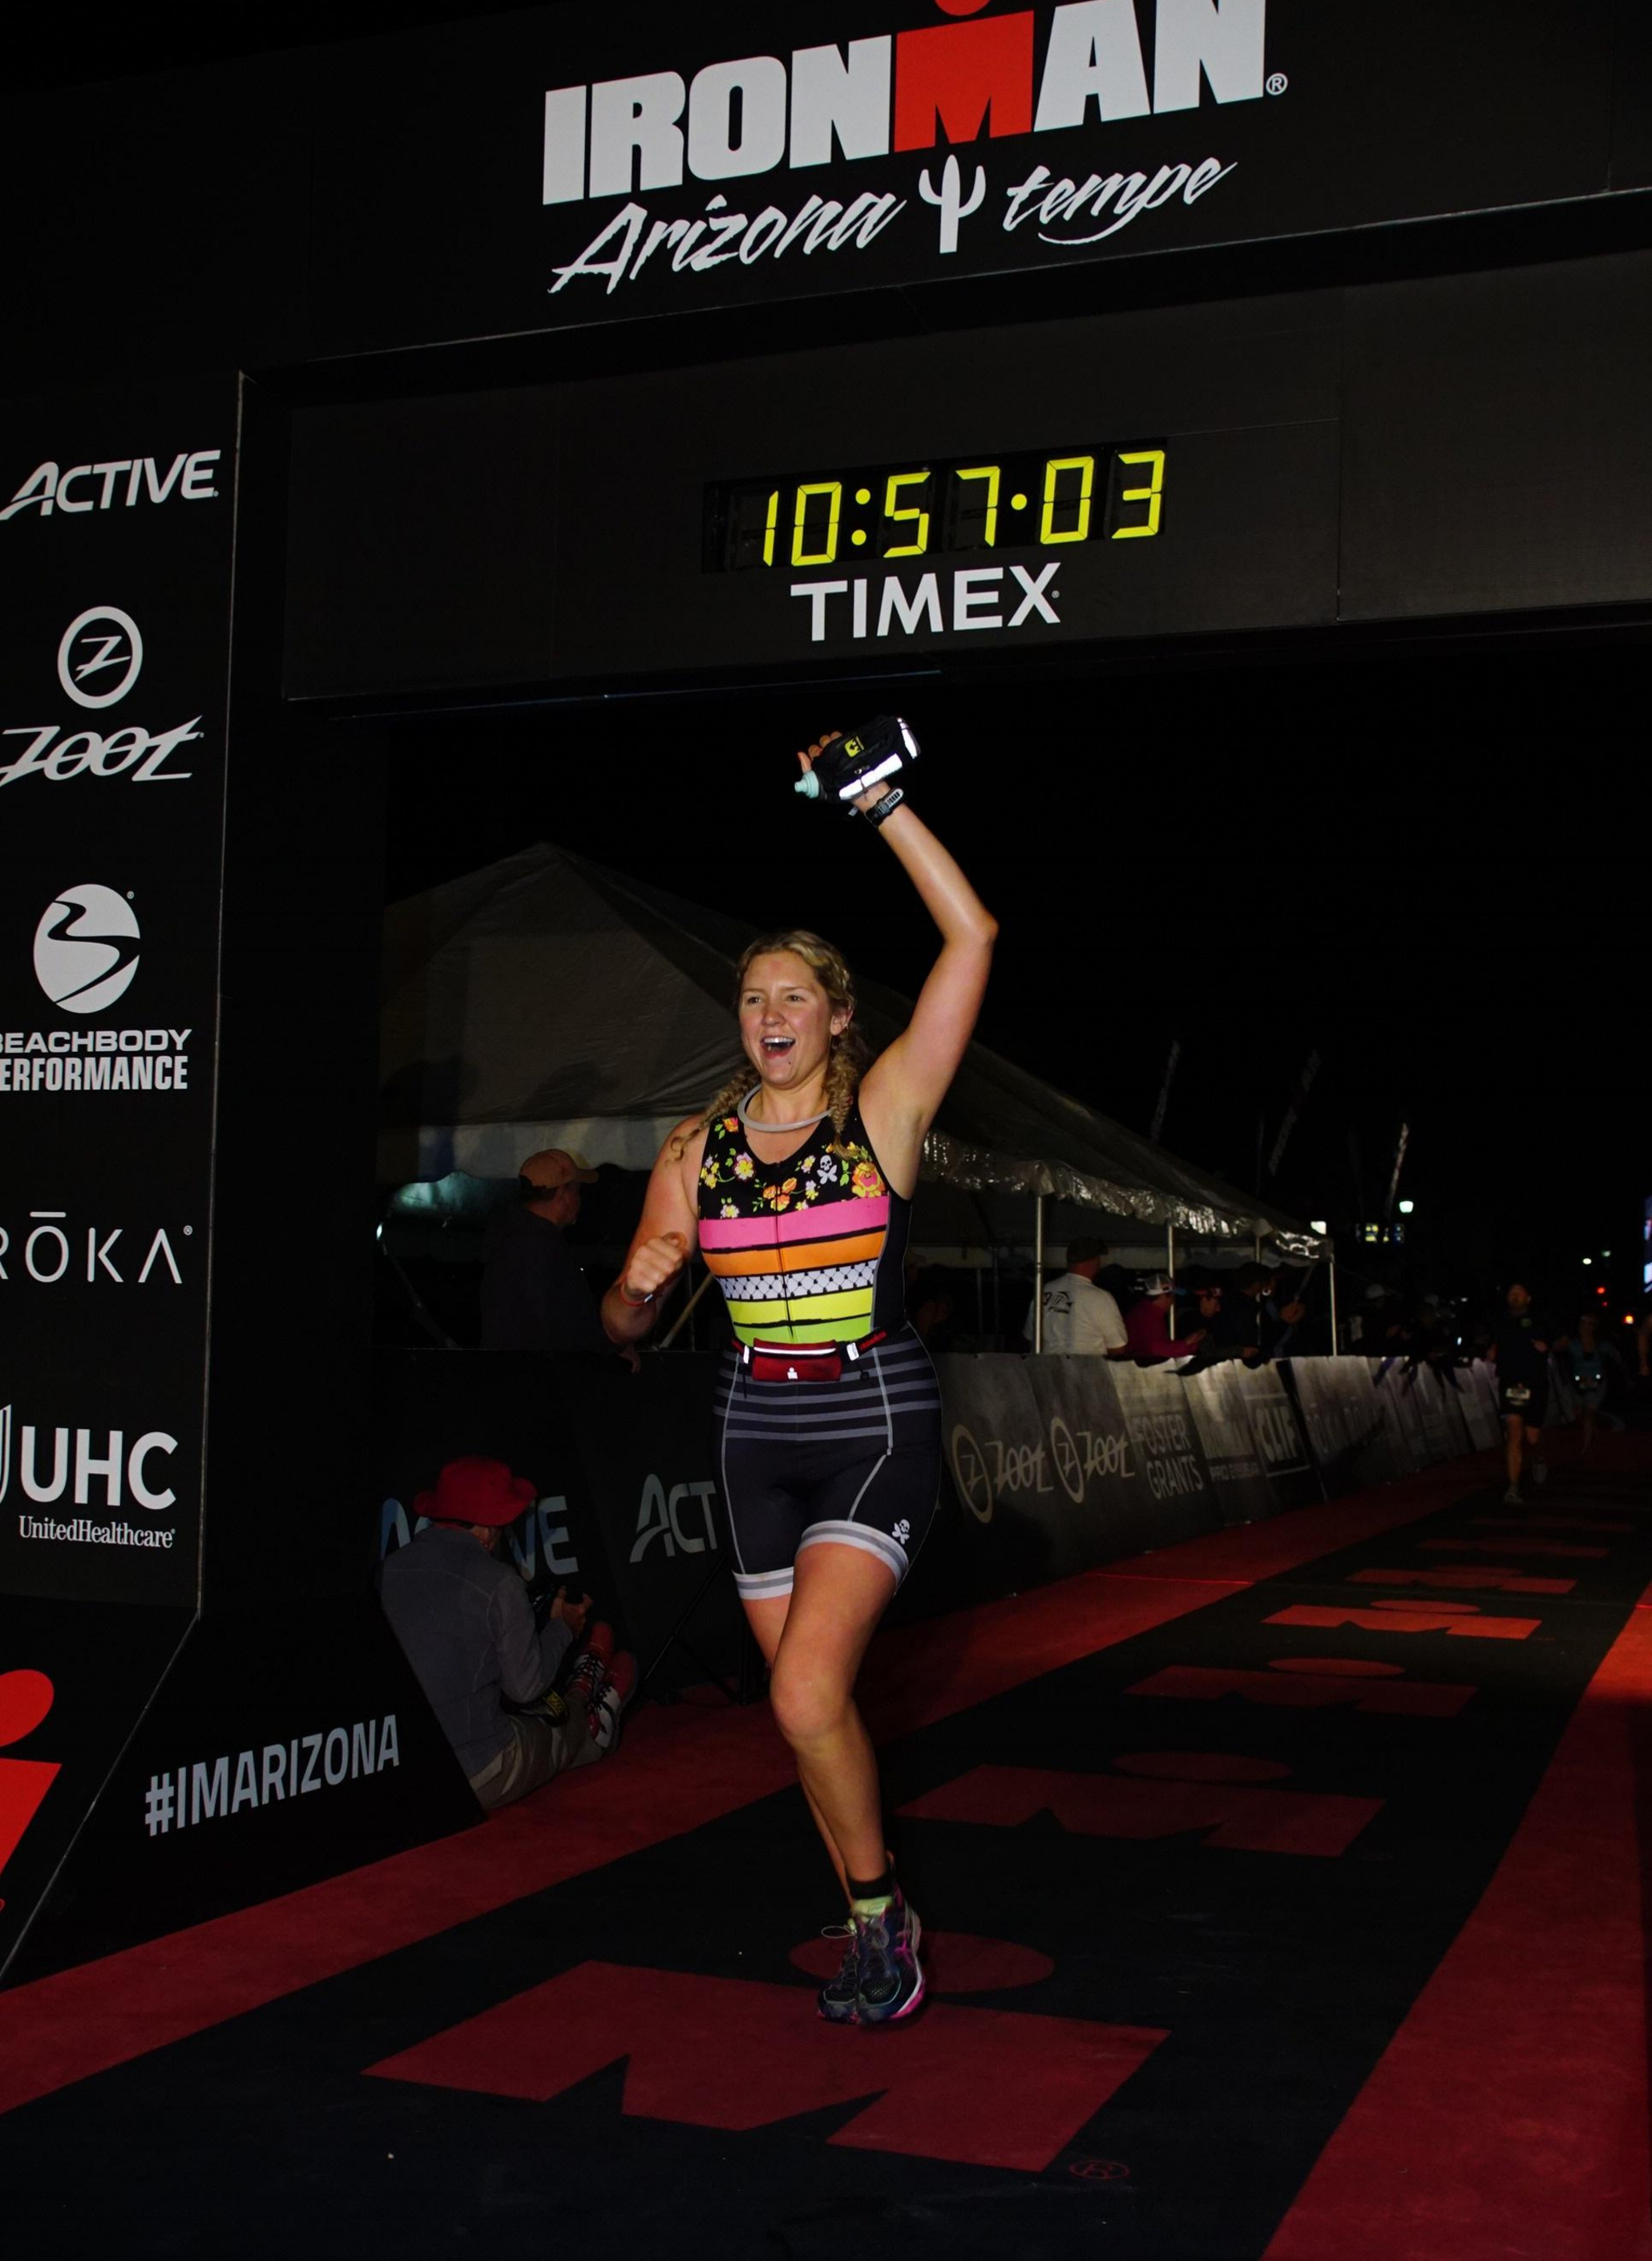 Jacqueline Wabler from Atlanta, Georgia...You Are An Ironman!